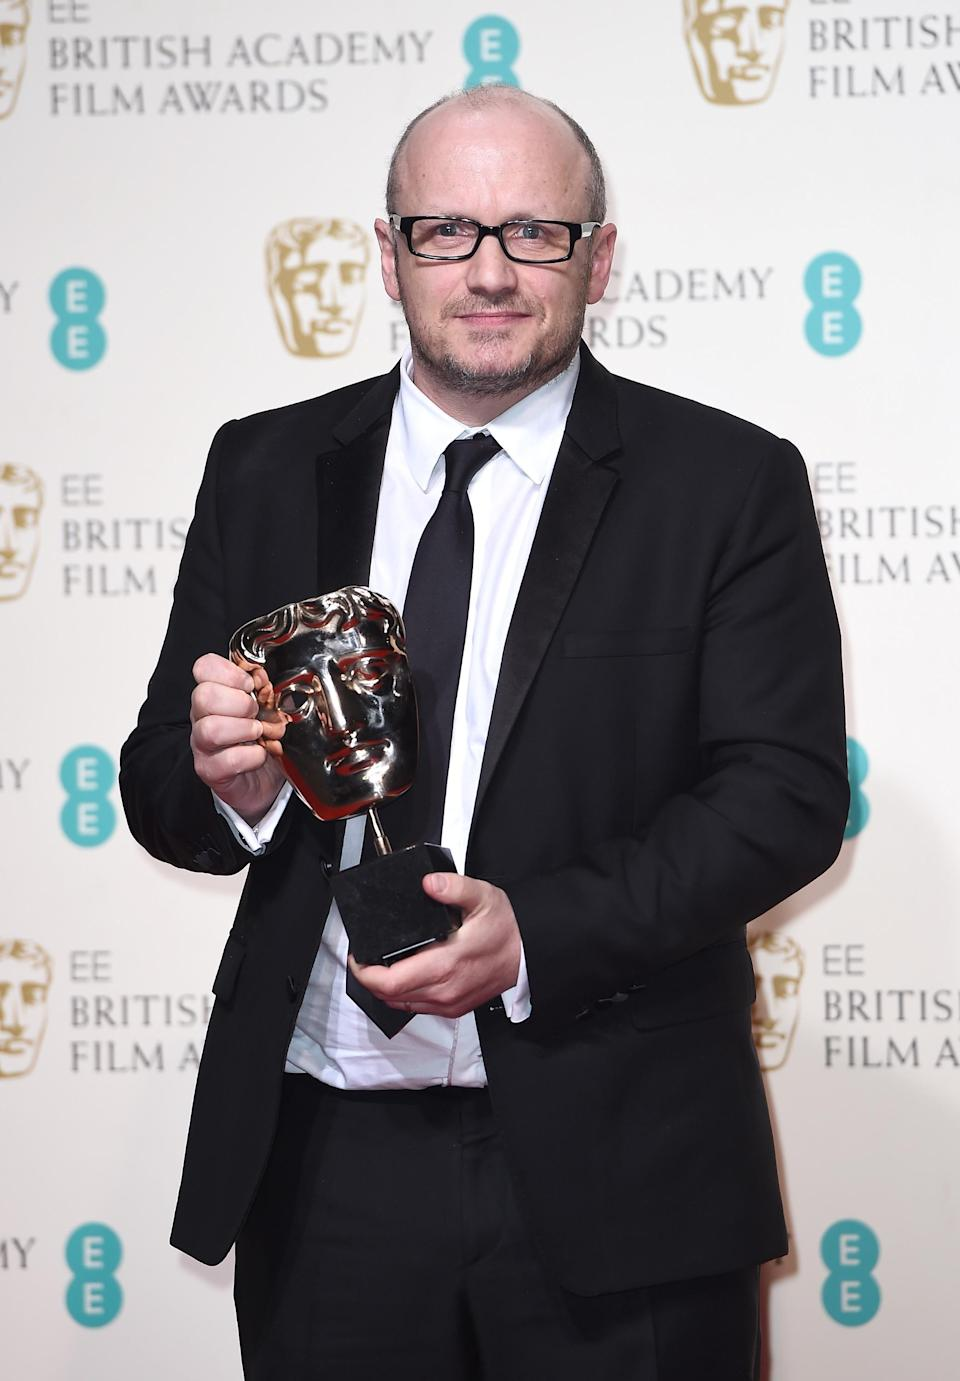 Lenny Abrahamson, accepting the Best Actress award on behalf of Brie Larson for 'Room' poses in the winners room at the EE British Academy Film Awards on February 14, 2016 in London, England. (Photo by Ian Gavan/Getty Images)